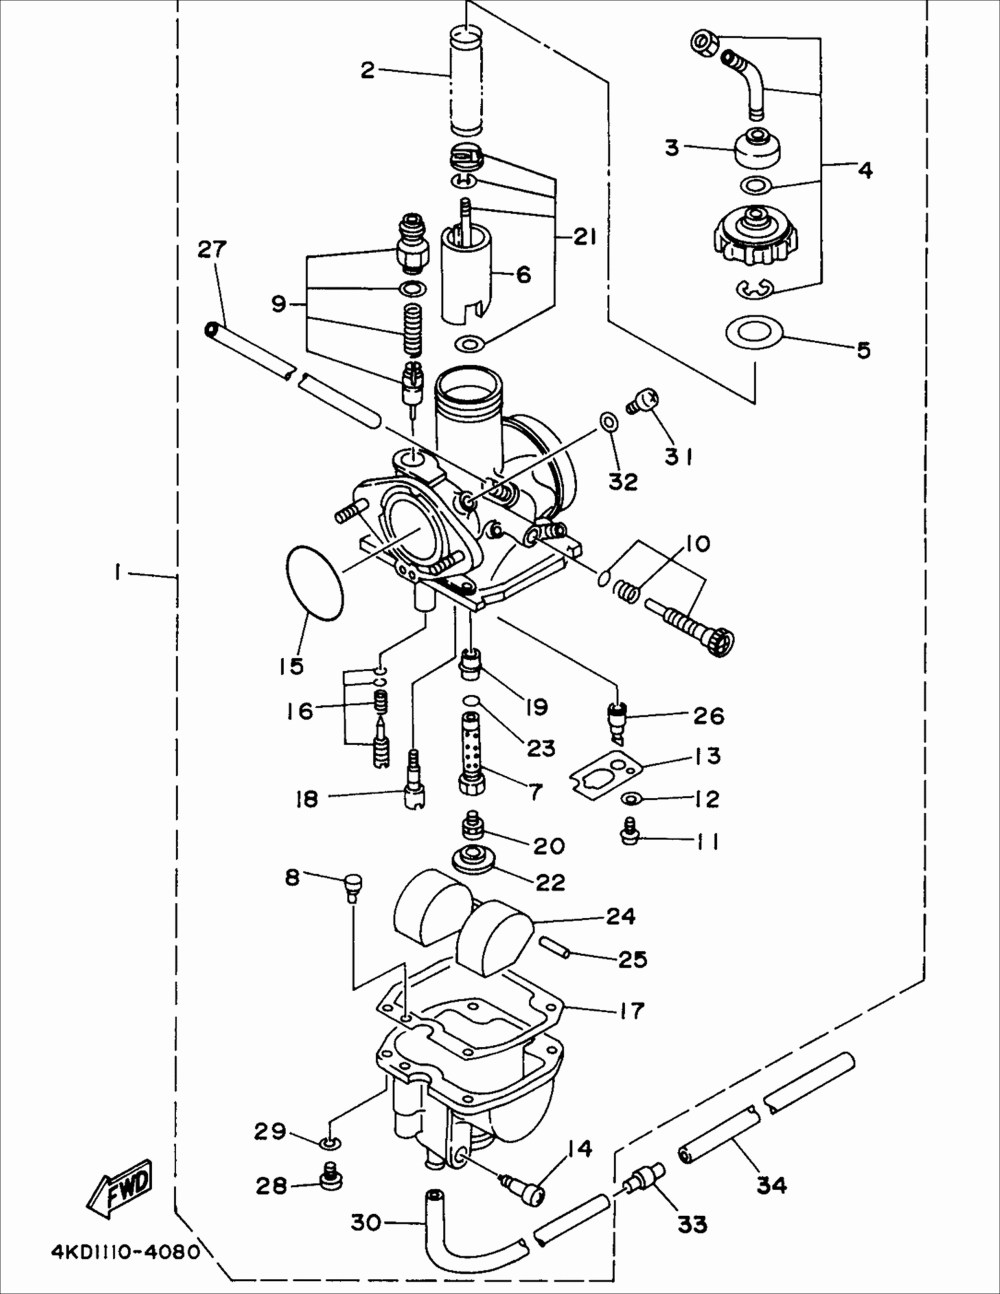 medium resolution of 1995 mitsubishi mirage ls engine diagram opinions about wiring 2000 mitsubishi galant wiring diagram 2001